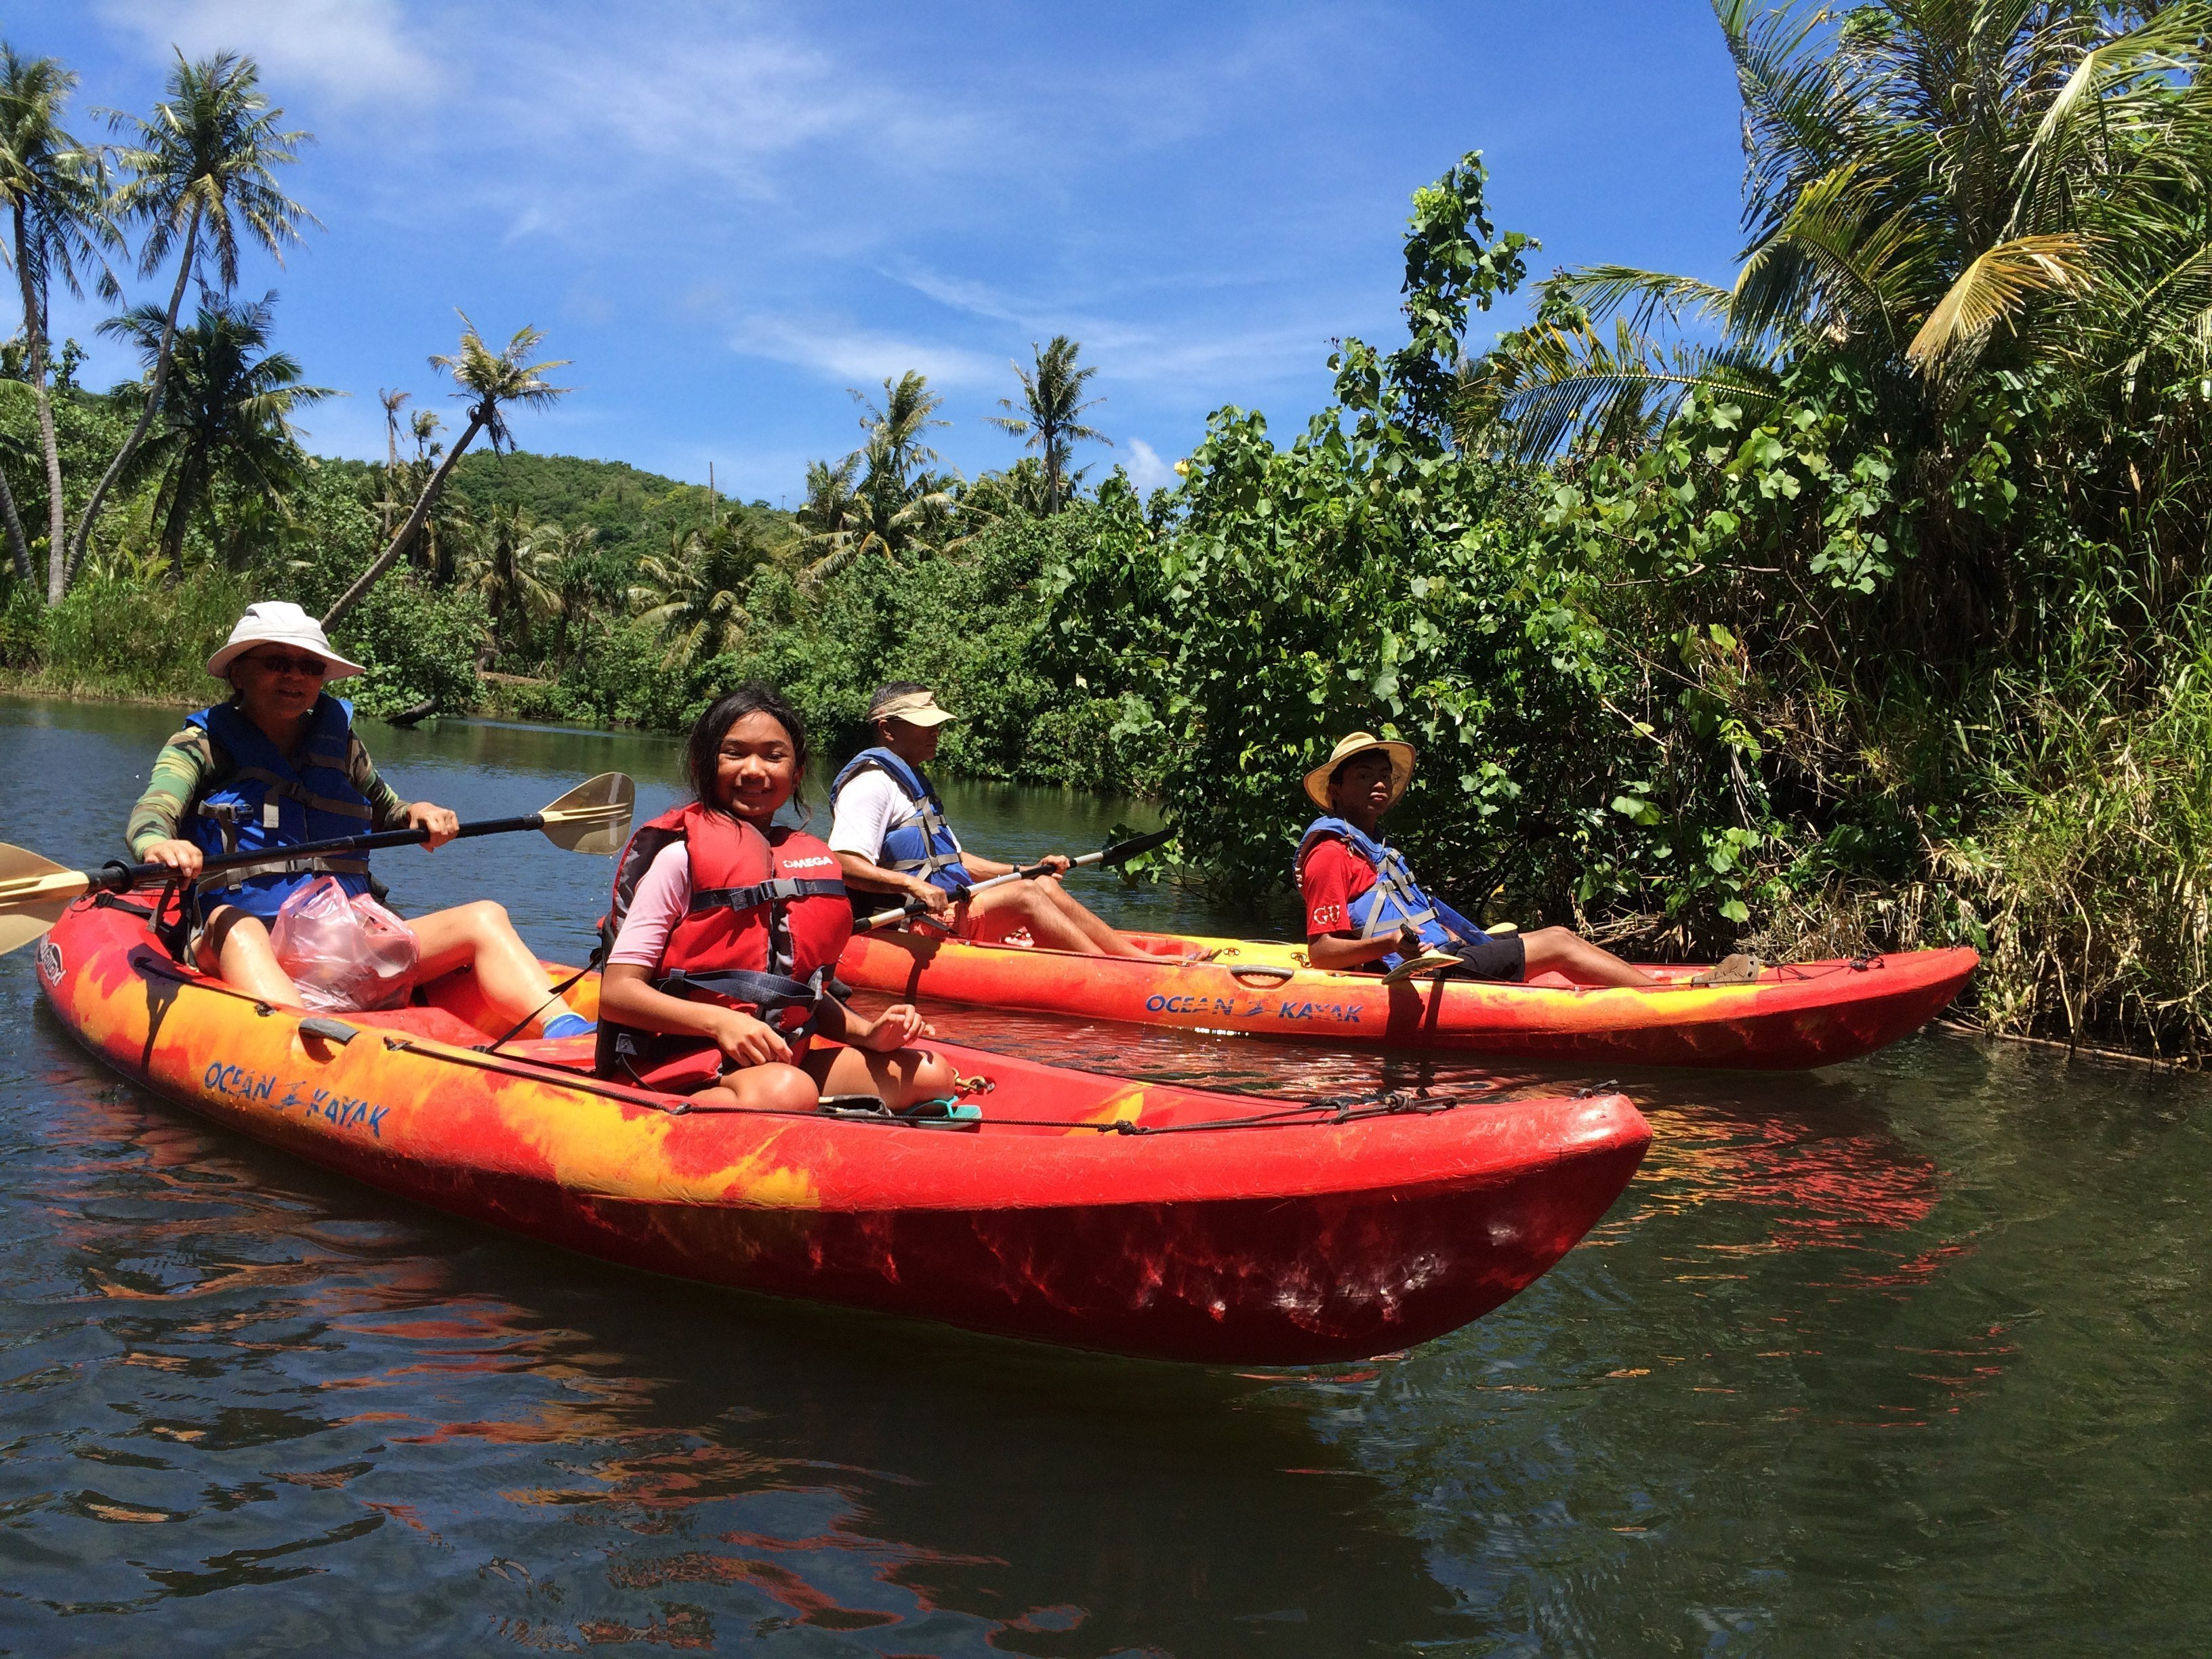 Guam, Things to do, Valley of the Latte, Tours, Activities, Kayaking